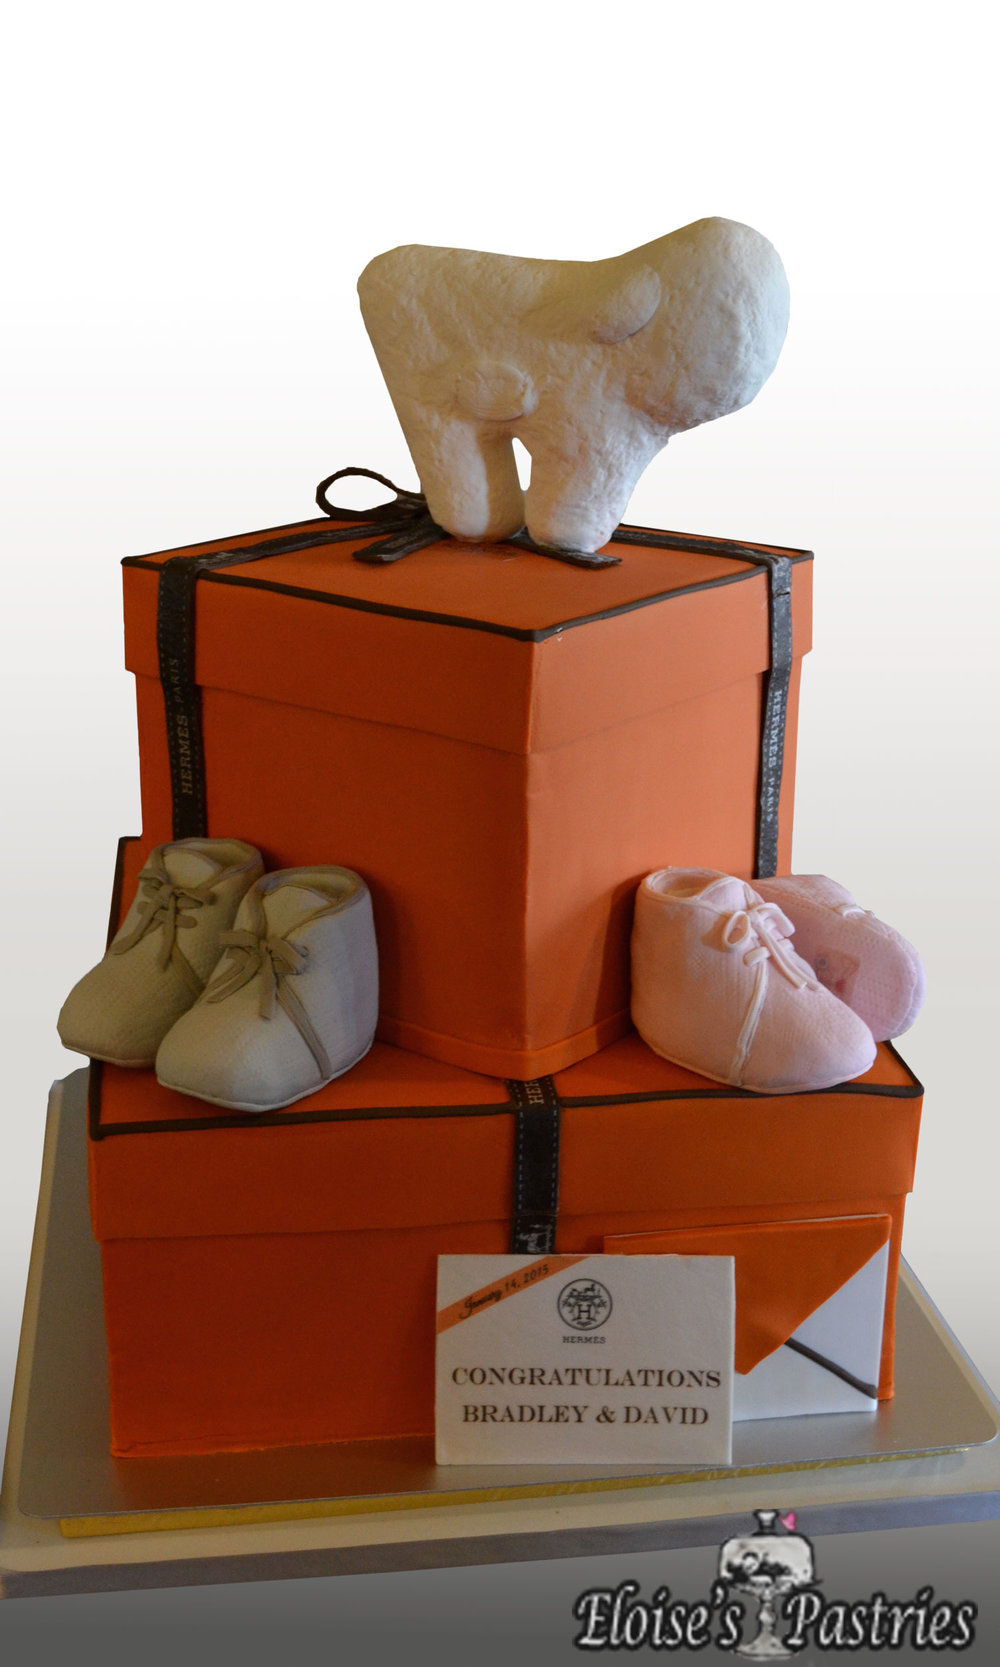 Hermes/Baby Boots Baby Shower Cake